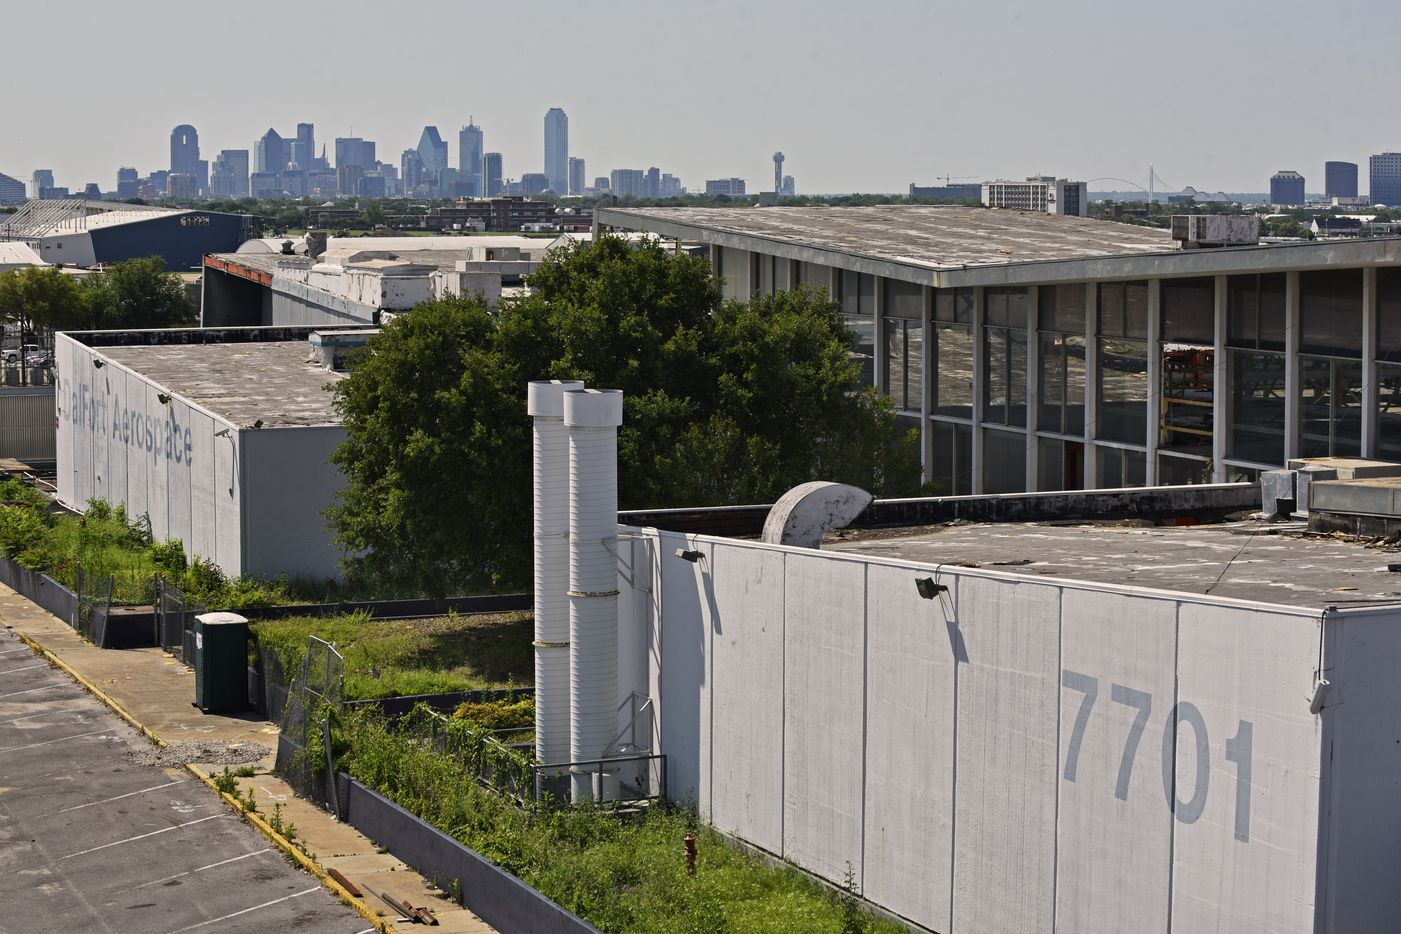 The 60-year-old Braniff Airways base at Dallas Love Field is being turned into a business center.